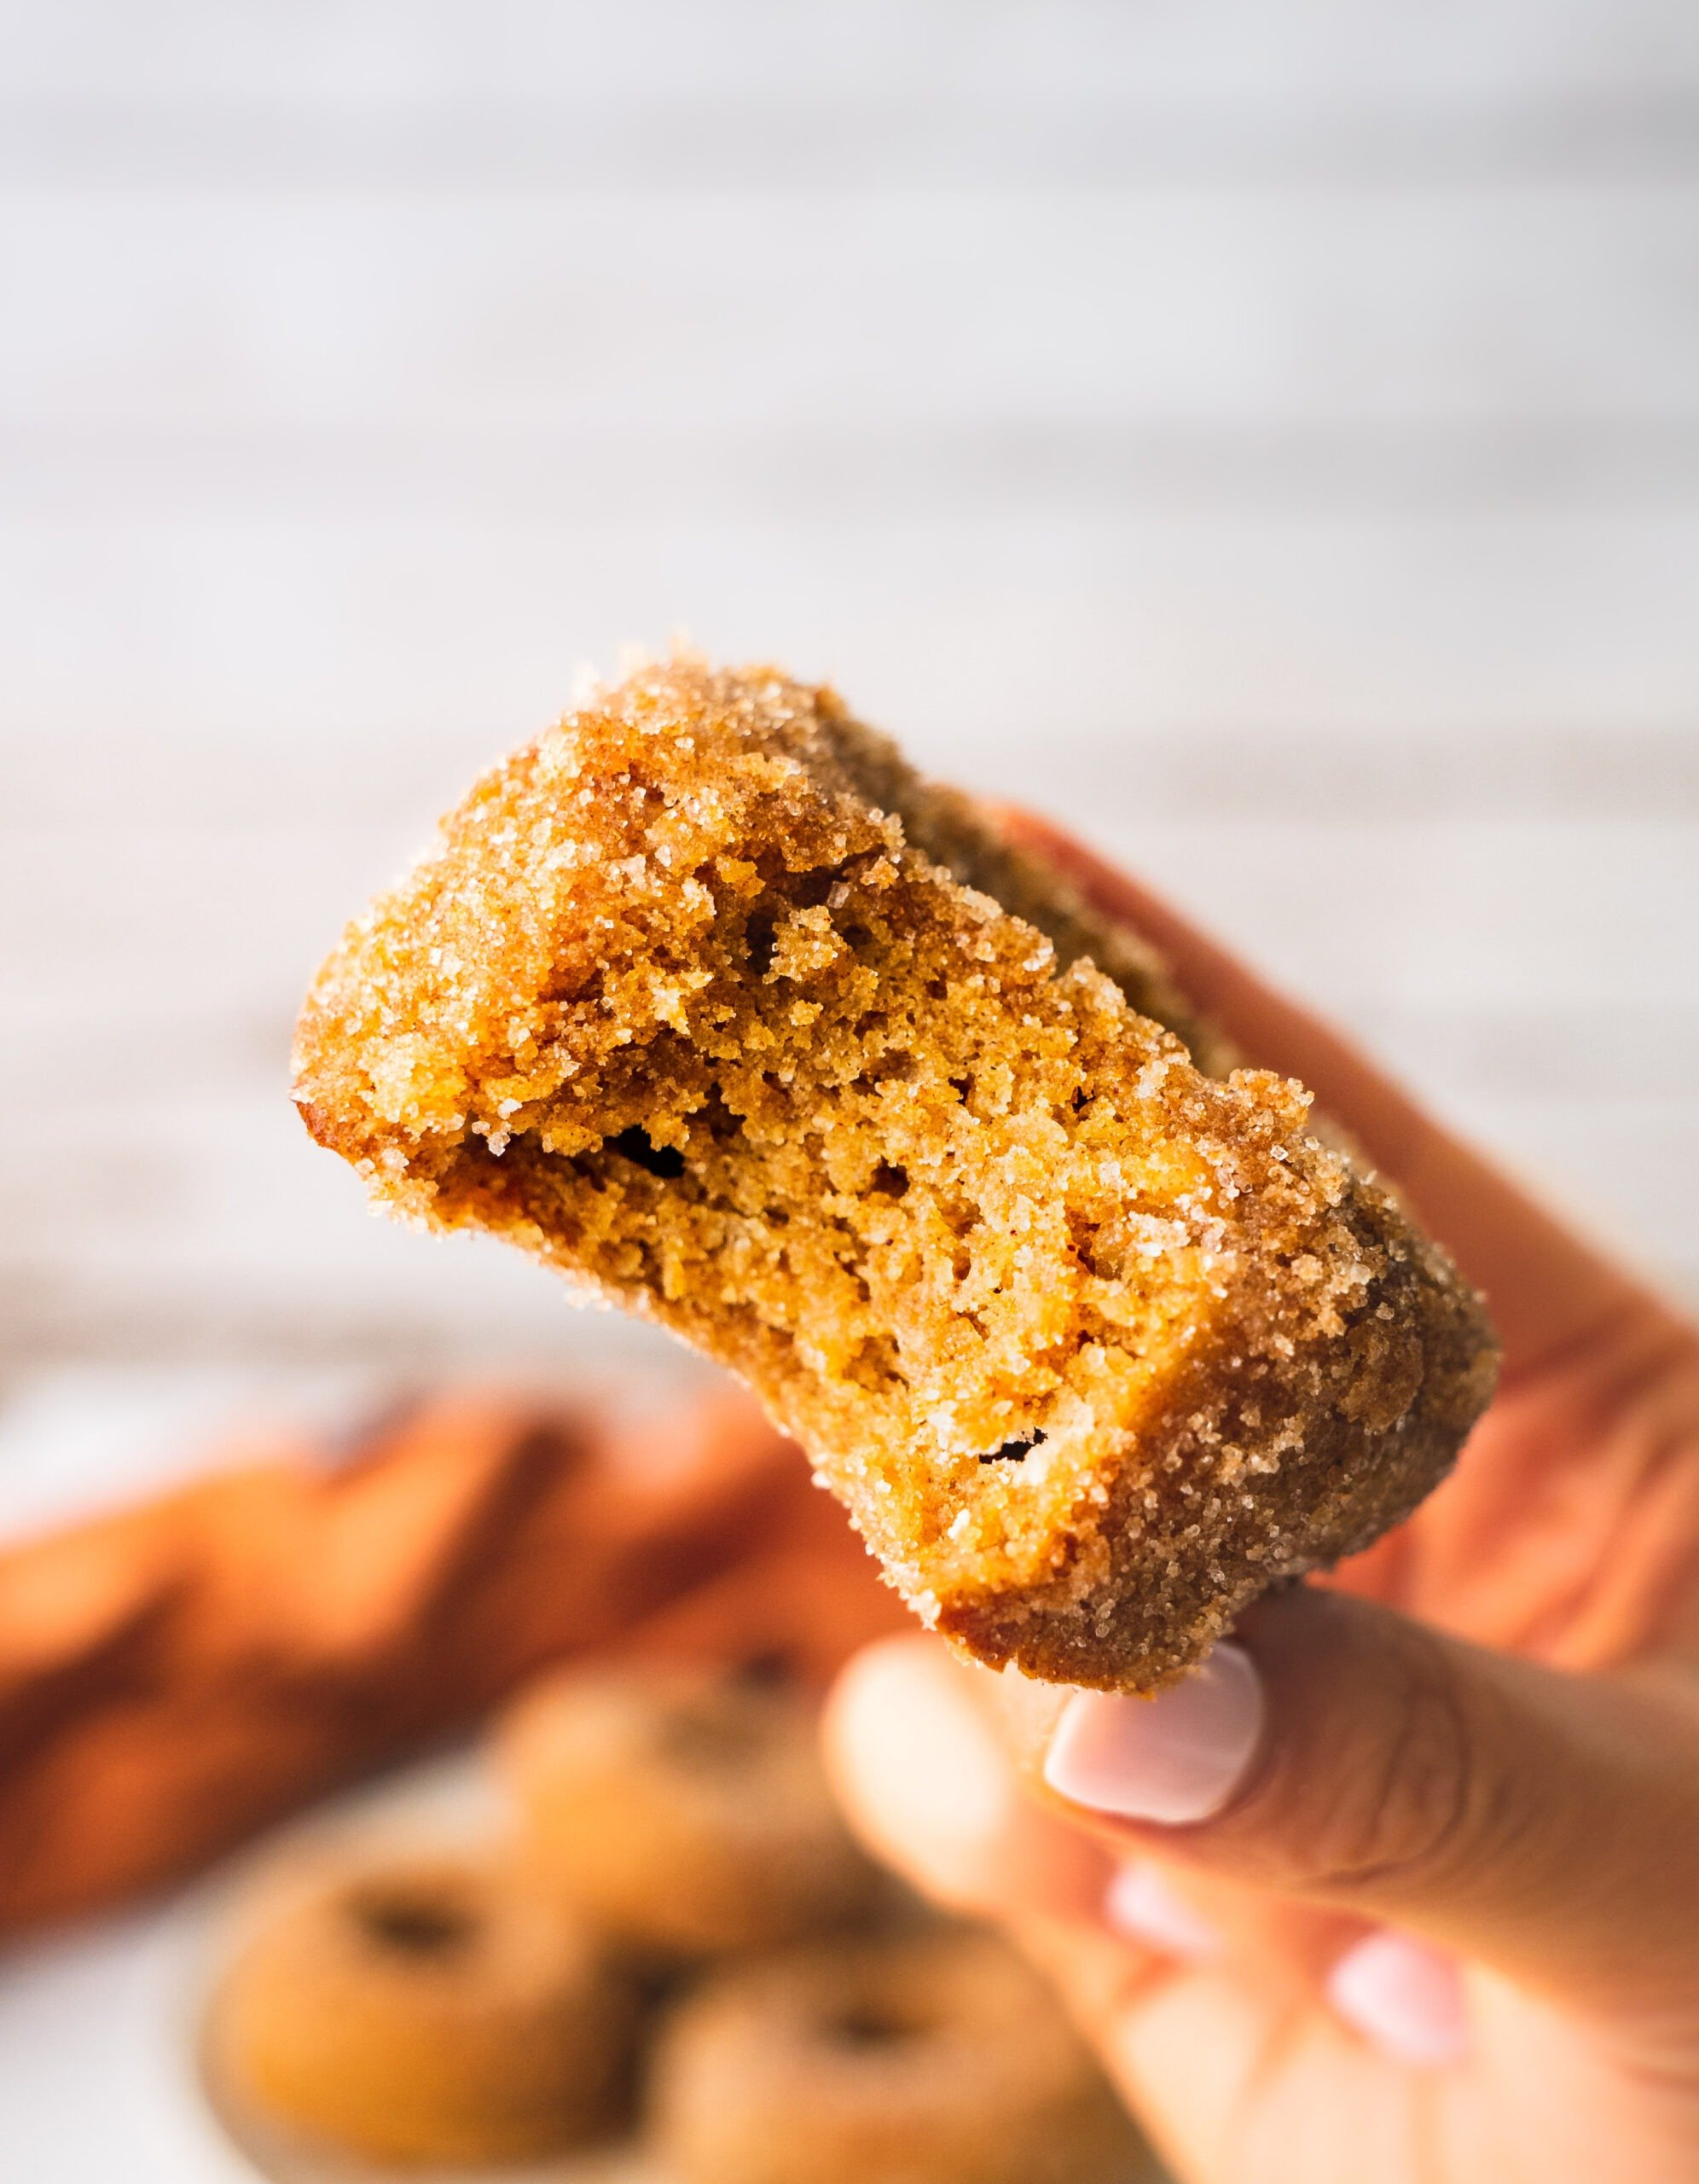 A piece of fluffy and airy apple cider donuts coated i cinnamon sugar. There is a bite in one of the apple cider donuts and a glass of hot apple cider in the back.